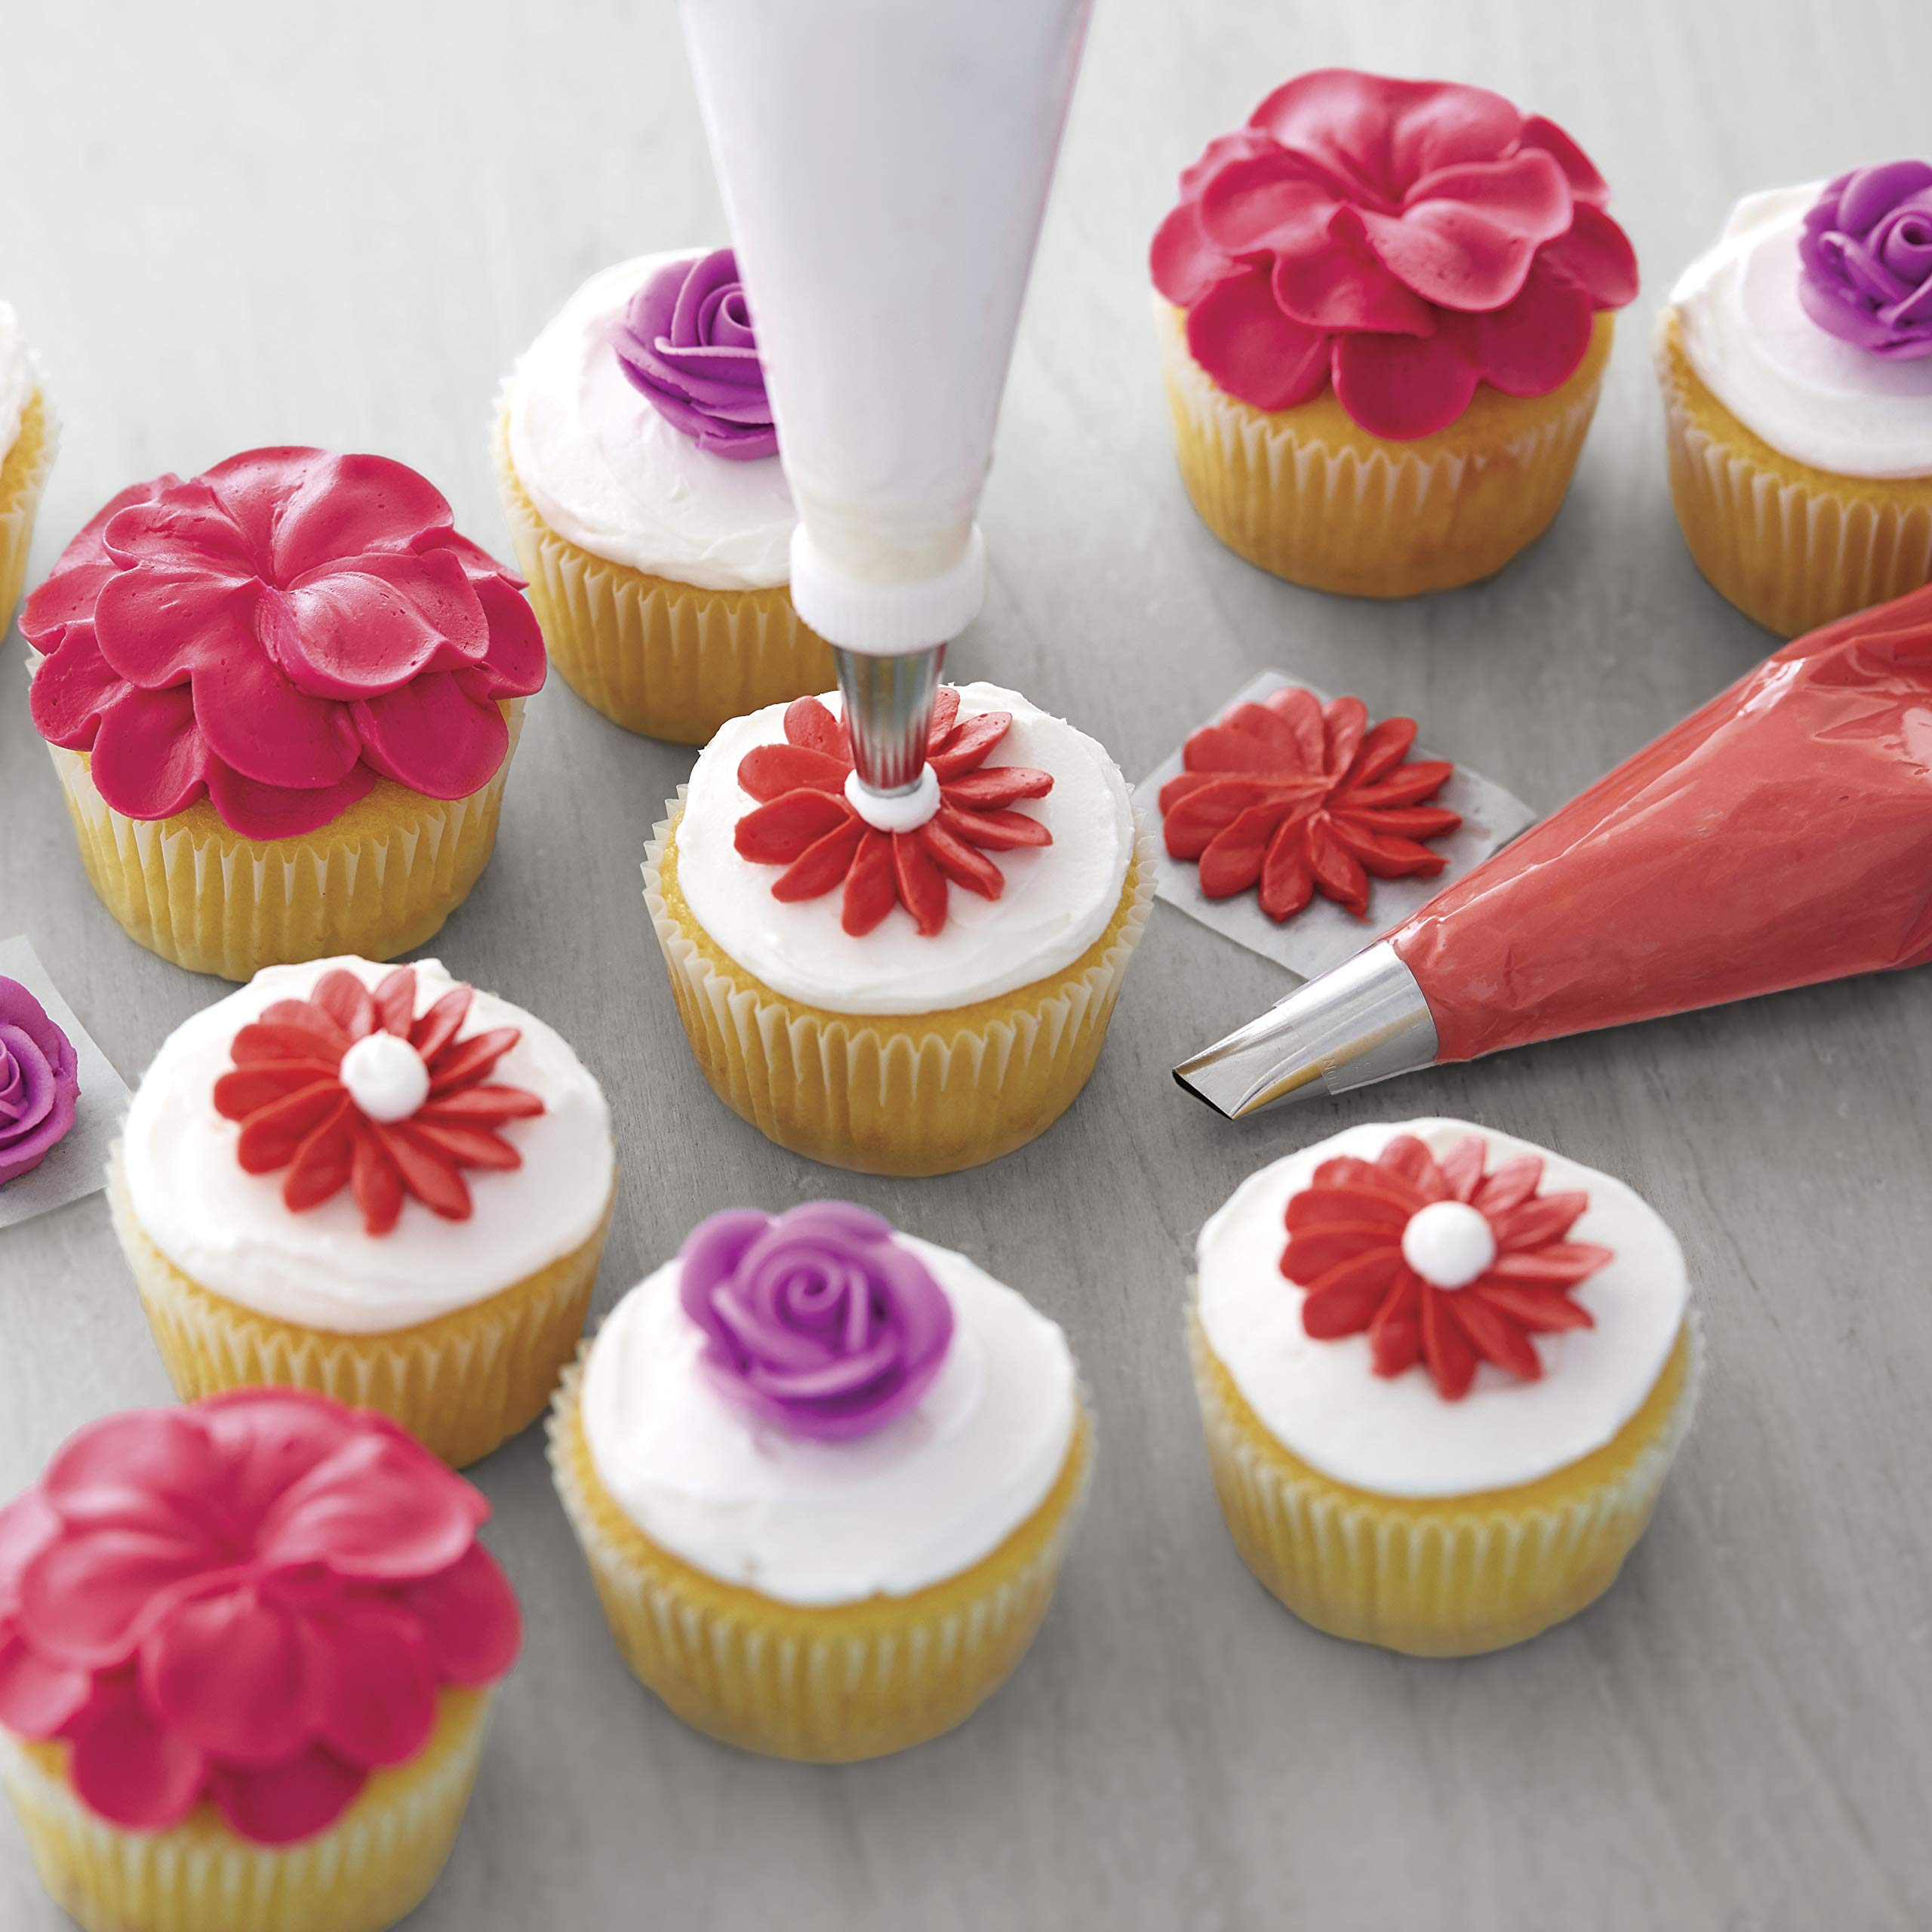 Wilton Decorator Preferred Buttercream Cake Decorating Set, Creating Your Masterpiece is as Easy as Cake, 48-Piece (Renewed) by Wilton (Image #9)